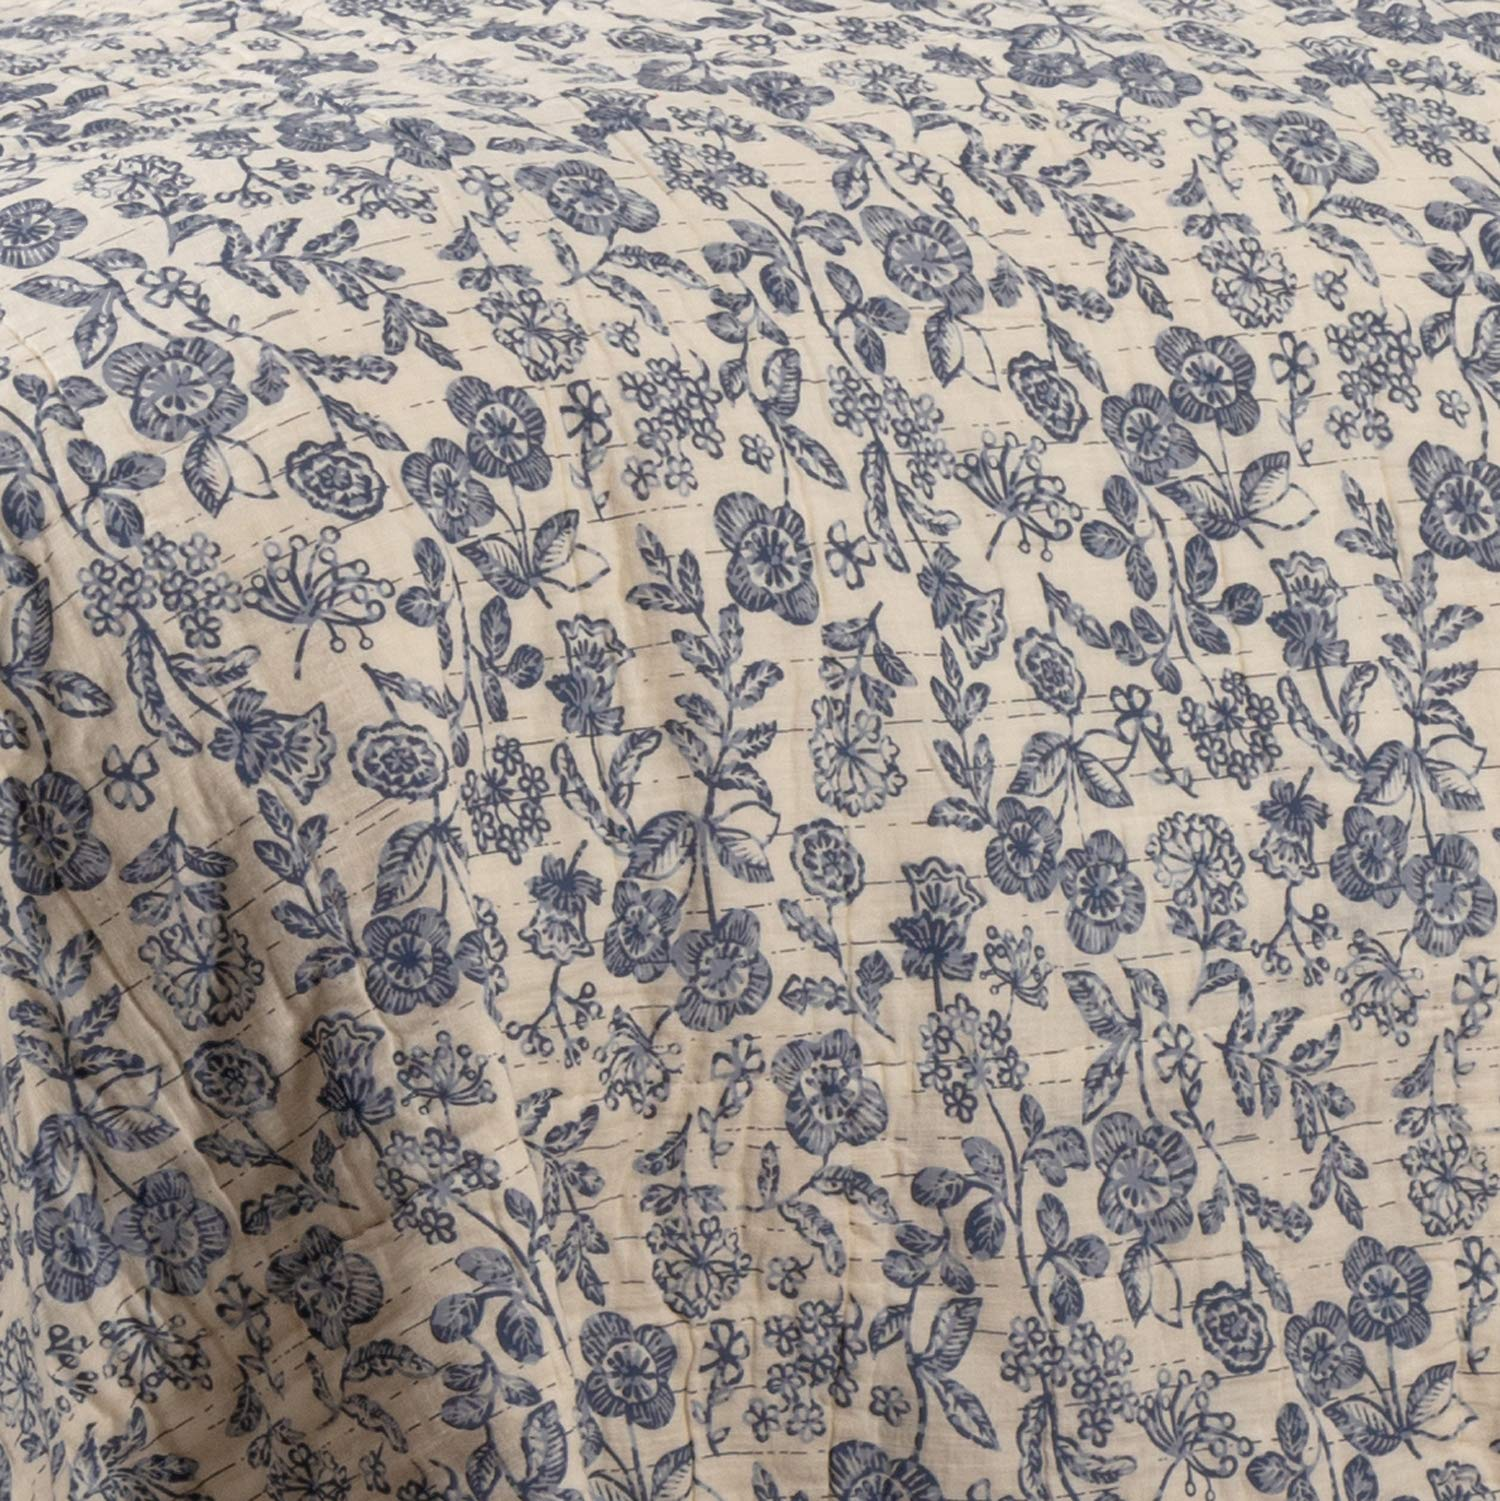 Piper Classics Doylestown Blue Queen Patchwork Quilt, Gingham Checks, Grain Sack & Ticking Stripes, Reversible to Floral Print, Blue & Cream Vintage Farmhouse Bedding, Rustic Country, Cottage Bedroom by Piper Classics (Image #6)